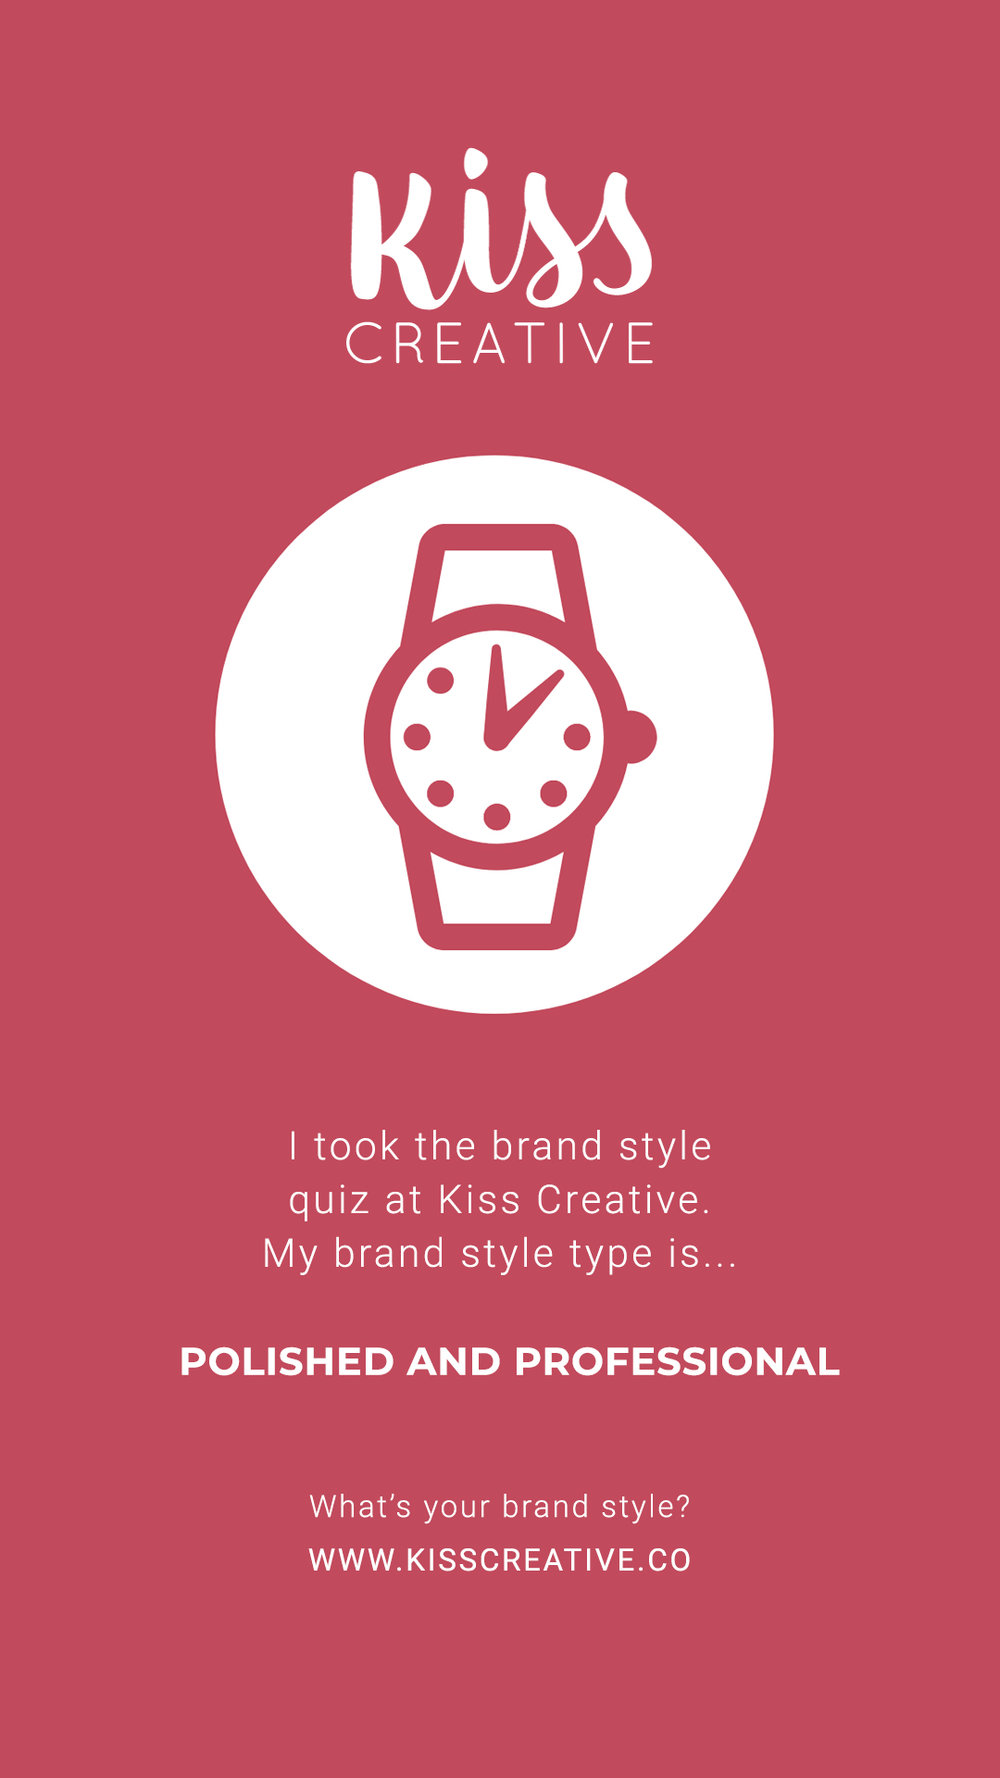 I took the Kiss Creative brand style quiz and I got Polished and Professional.